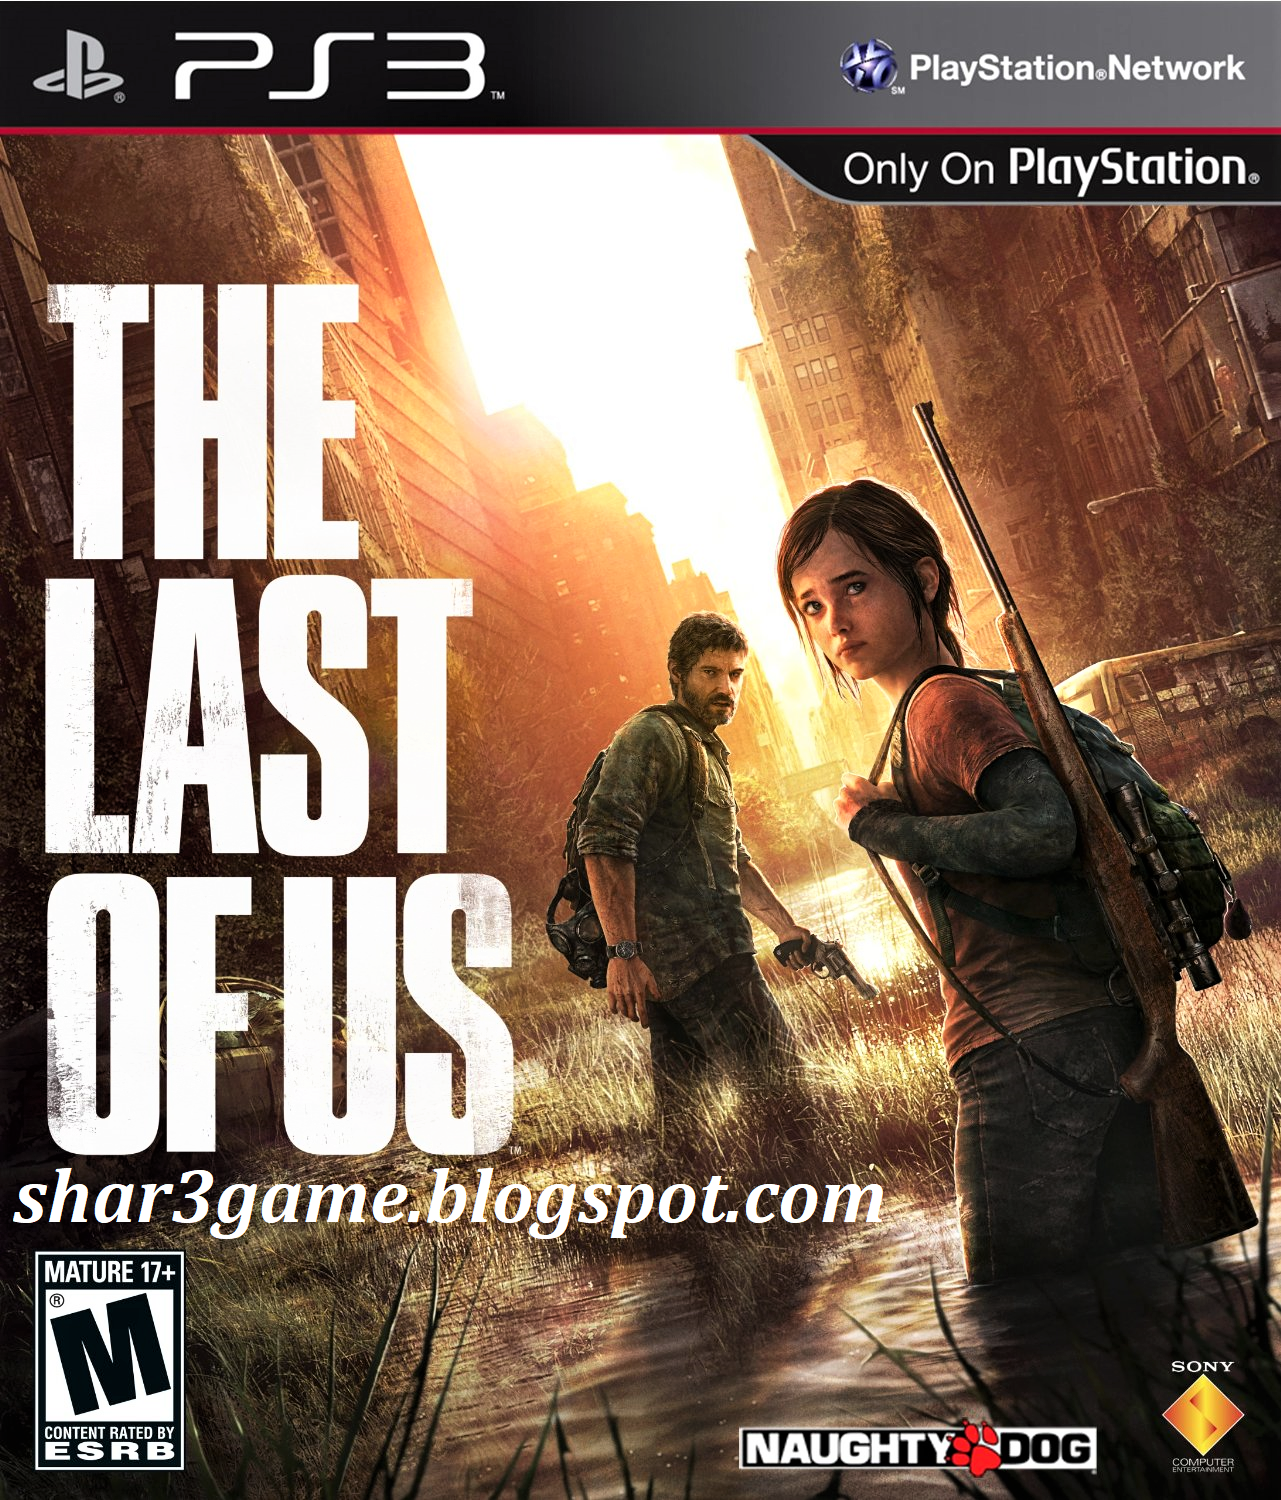 SHAR3GAME - Free Download Game + DLC PKG PS3: The Last of Us